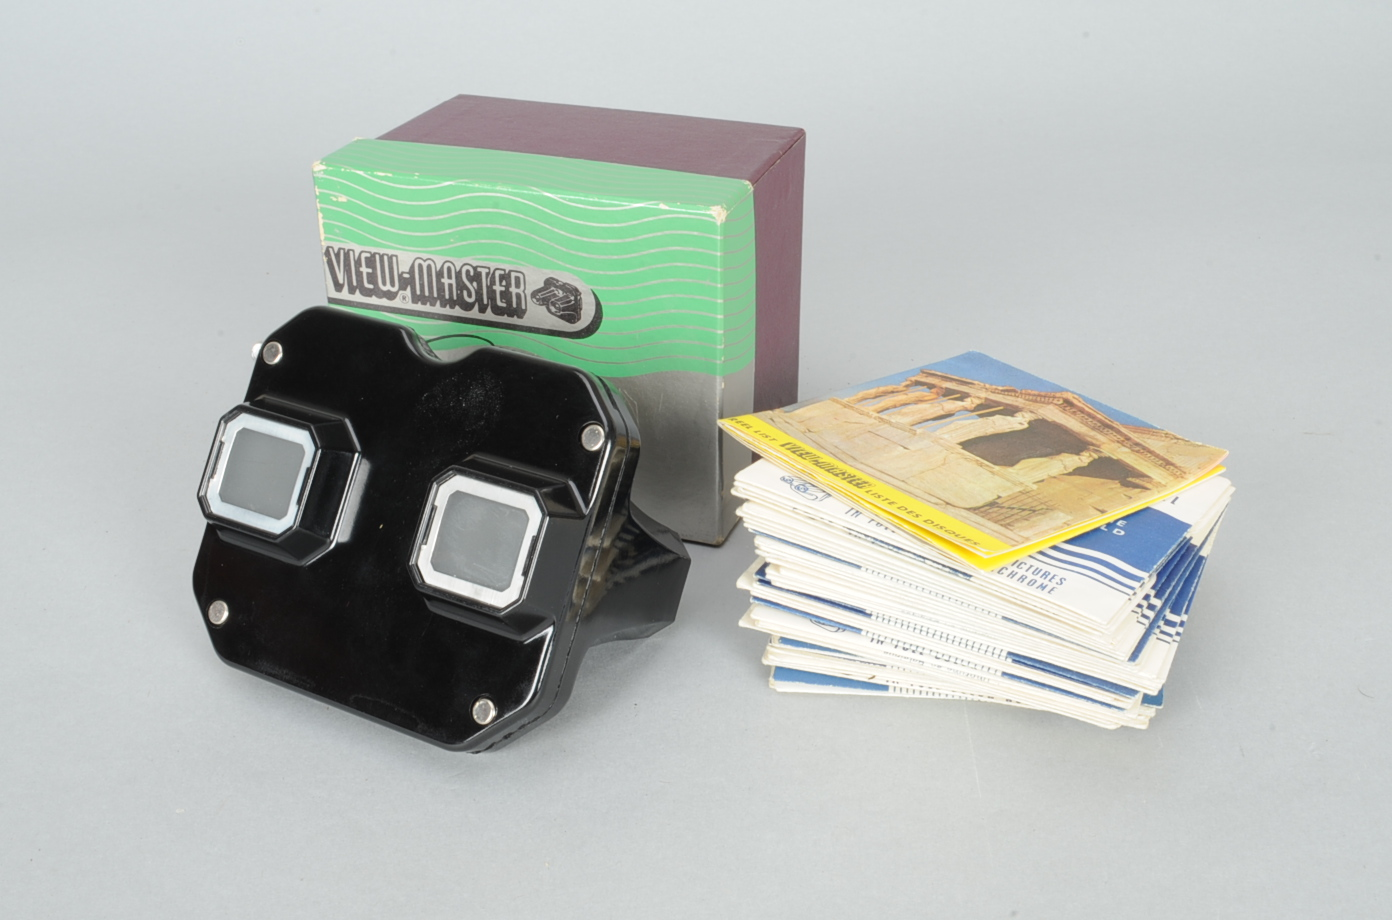 Lot 264 - A Sawyer's View-Master and Stereo Picture Reels, a boxed stereoscope and more than 30 picture